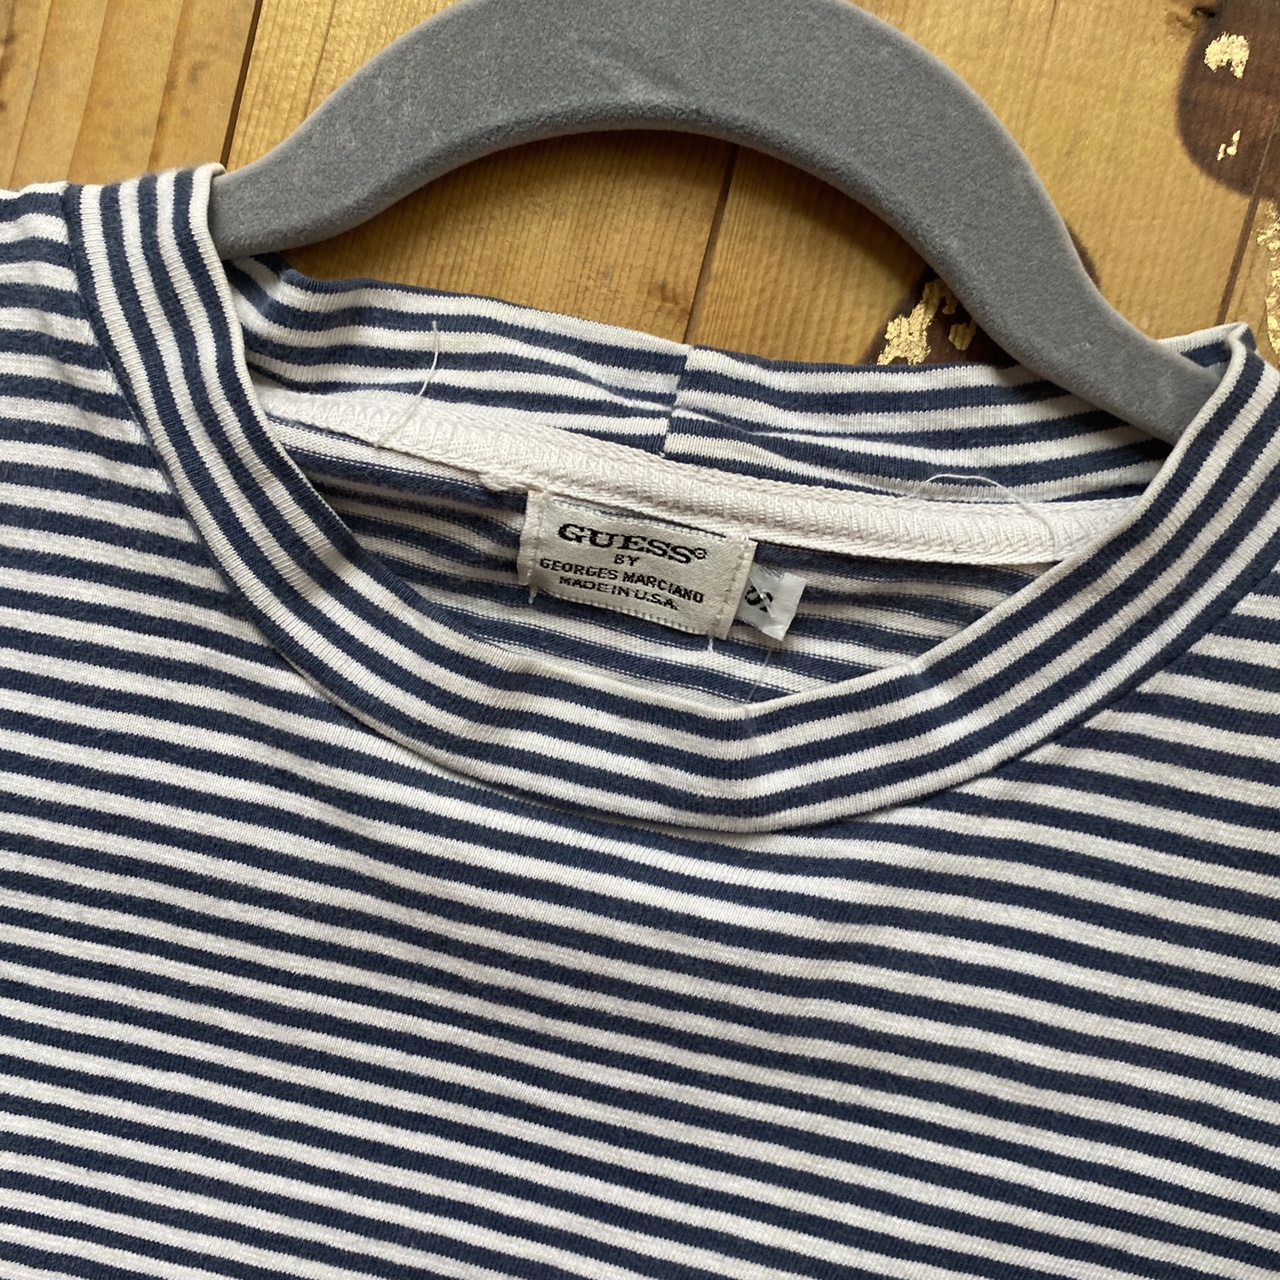 Product Image 3 - Vintage guess striped tee Crazyyyyy never